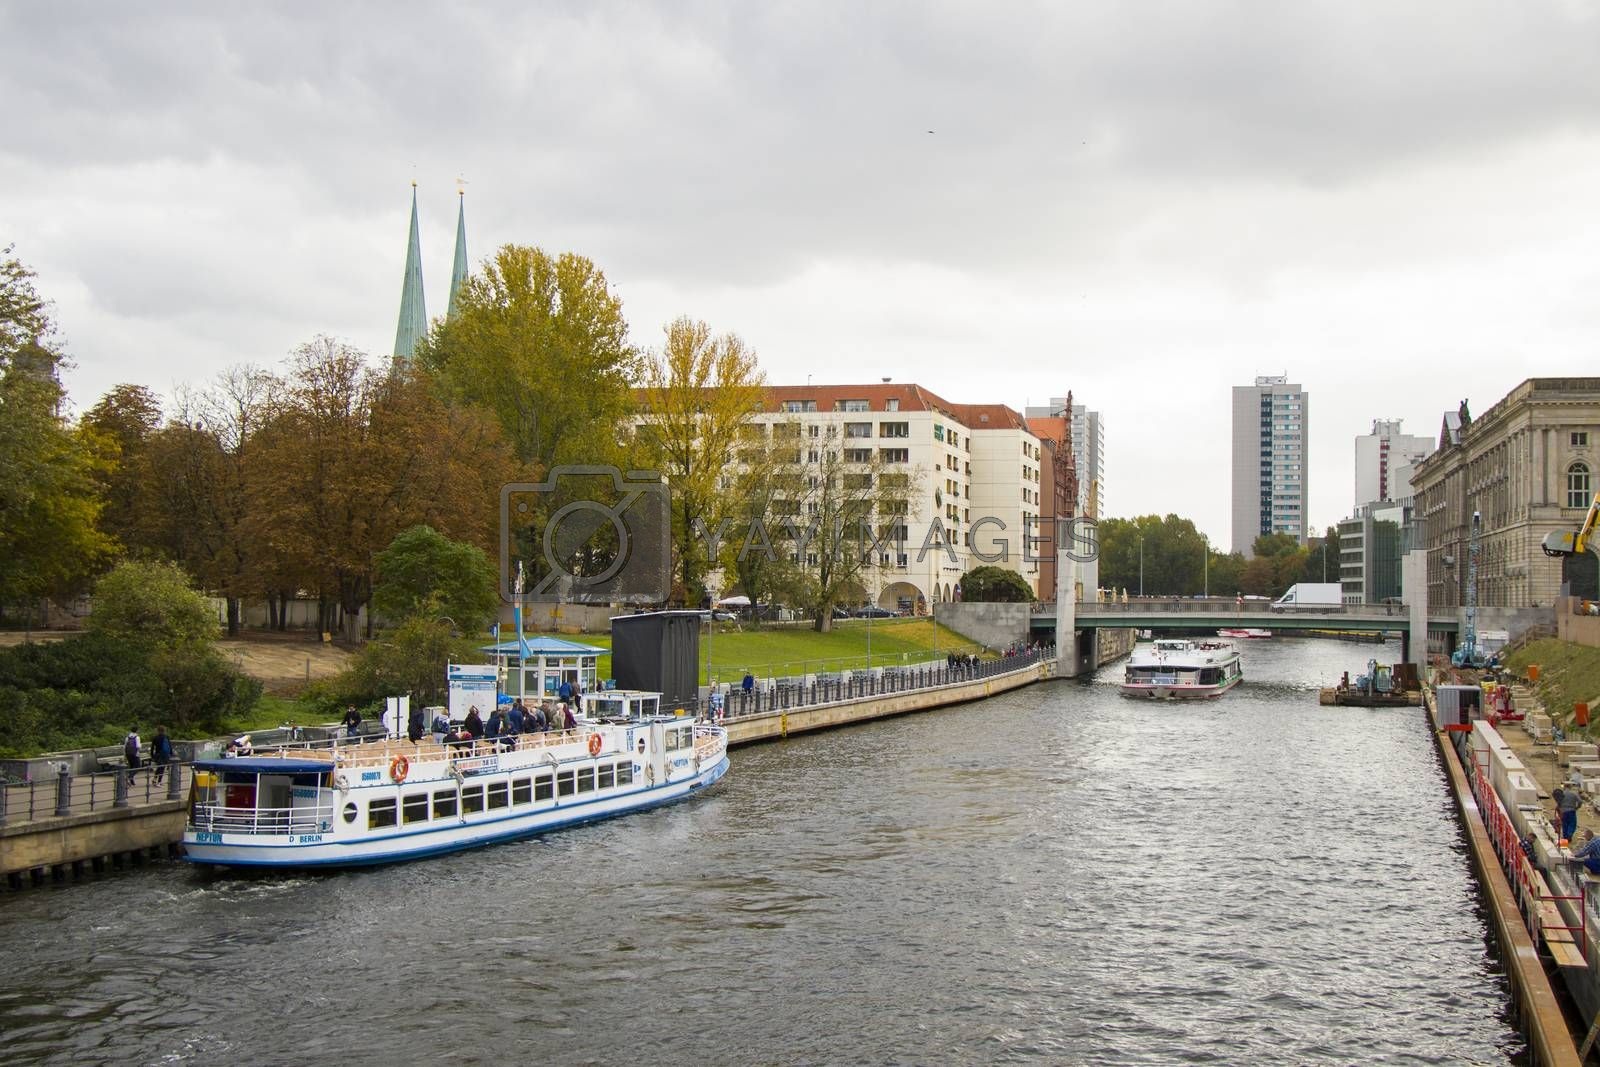 Boats in Berlin river, touristic trip with boats, white big boats in the city center in Germany